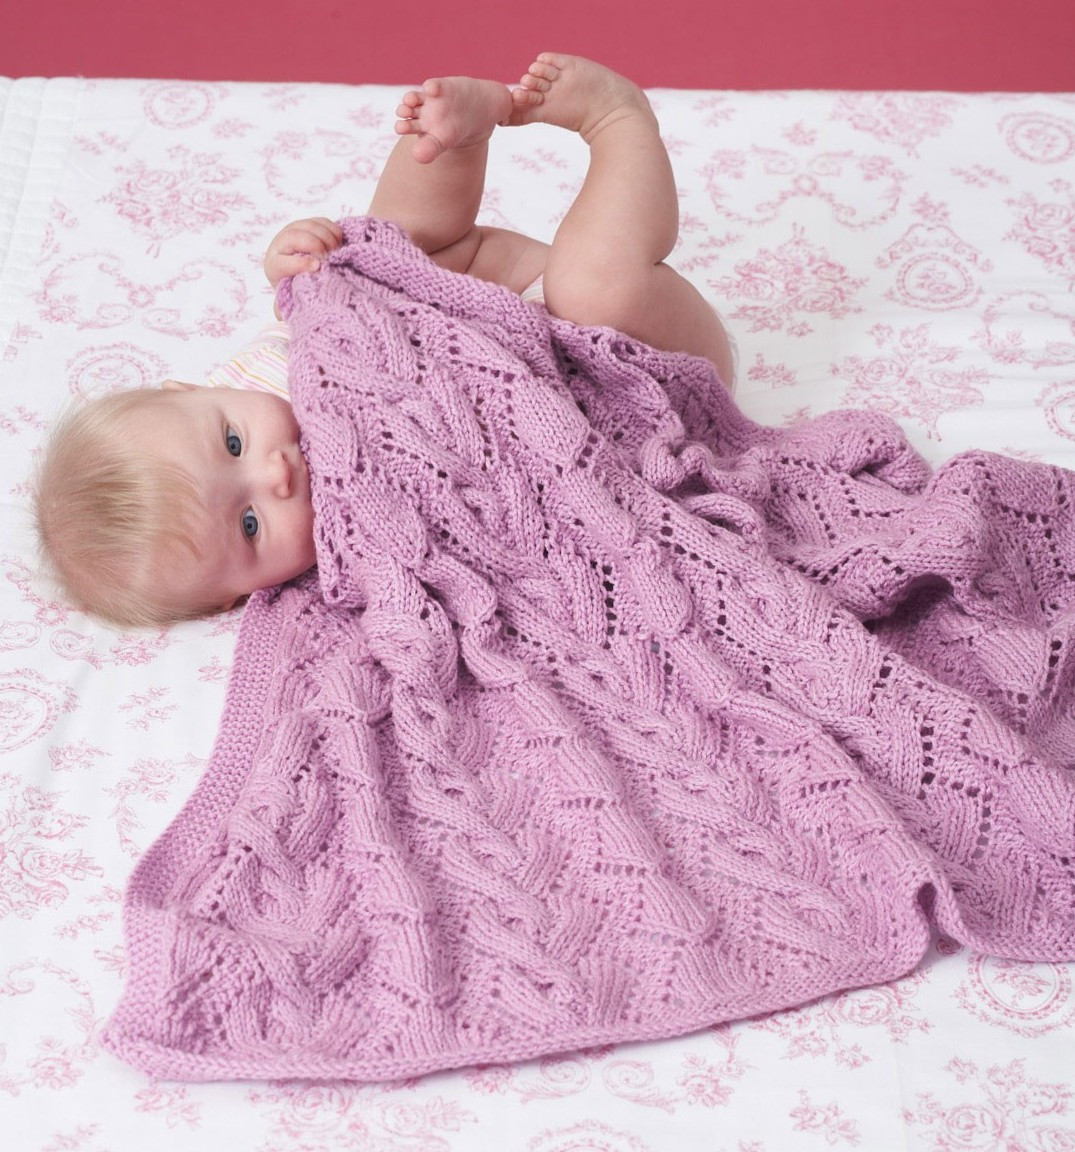 Baby Blanket Knitting Pattern Unique A some Baby Blanket Knitting Patterns Of Lovely 48 Photos Baby Blanket Knitting Pattern